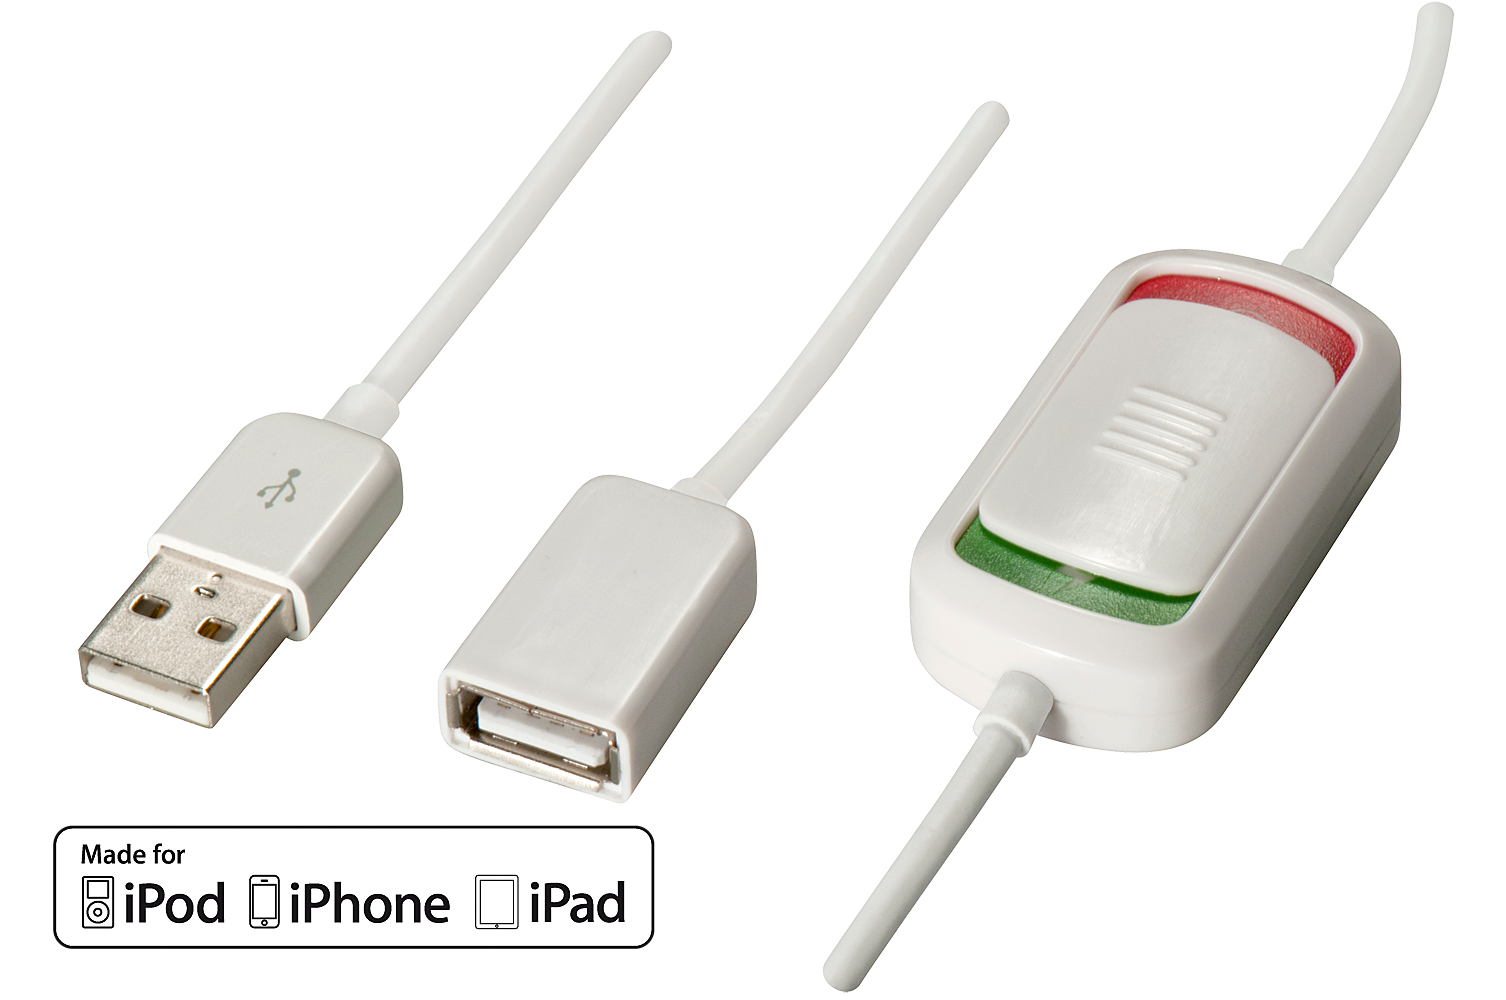 USB Lade- und Sync-Kabel f�r iPad, iPod, iPhone